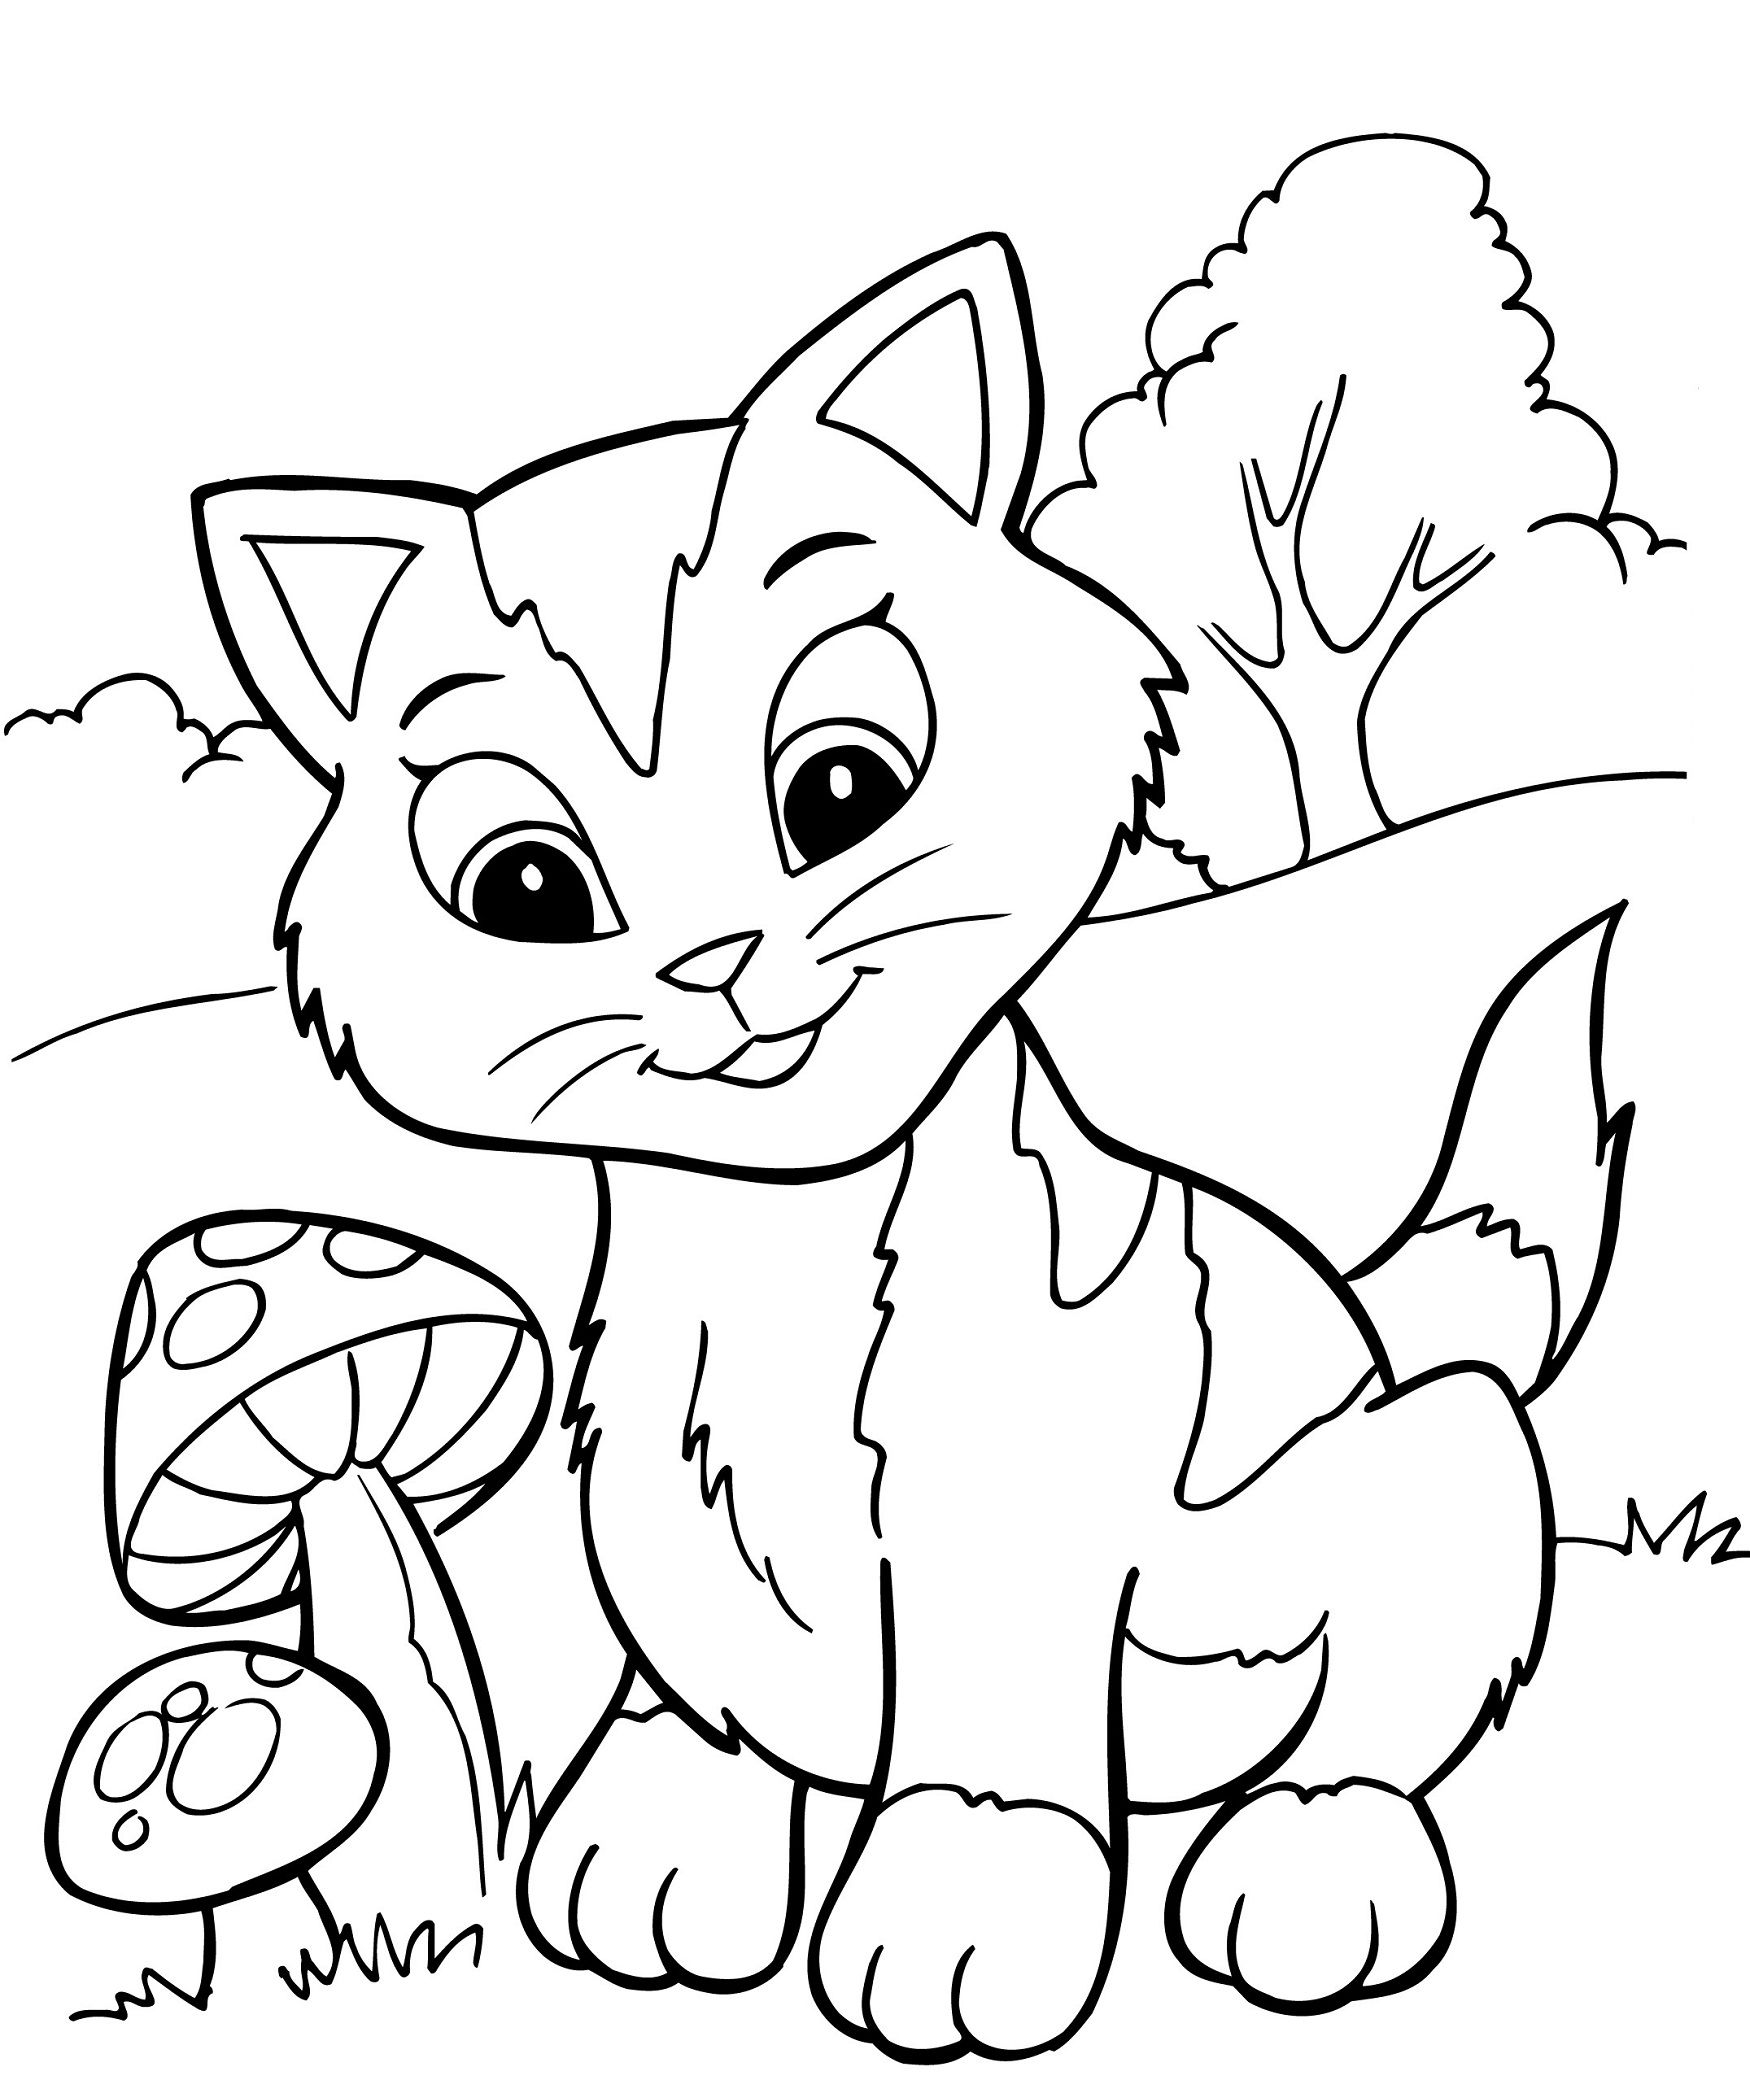 cute kittens coloring pages cute kitten with bow tie coloring page free printable pages cute kittens coloring